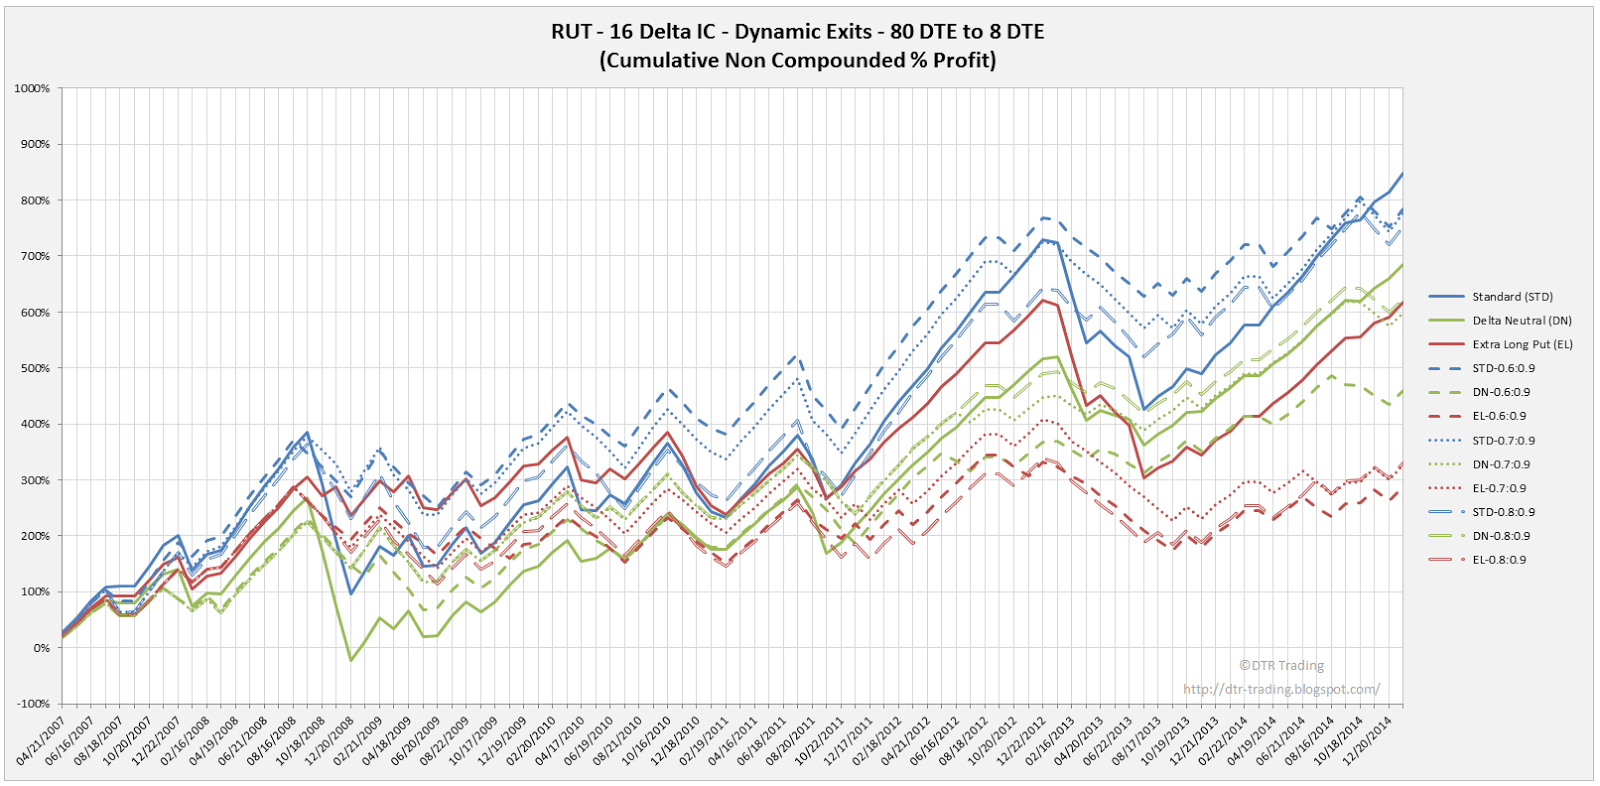 Iron Condor Dynamic Exit Equity Curves RUT 80 DTE 16 Delta Risk:Reward Versions